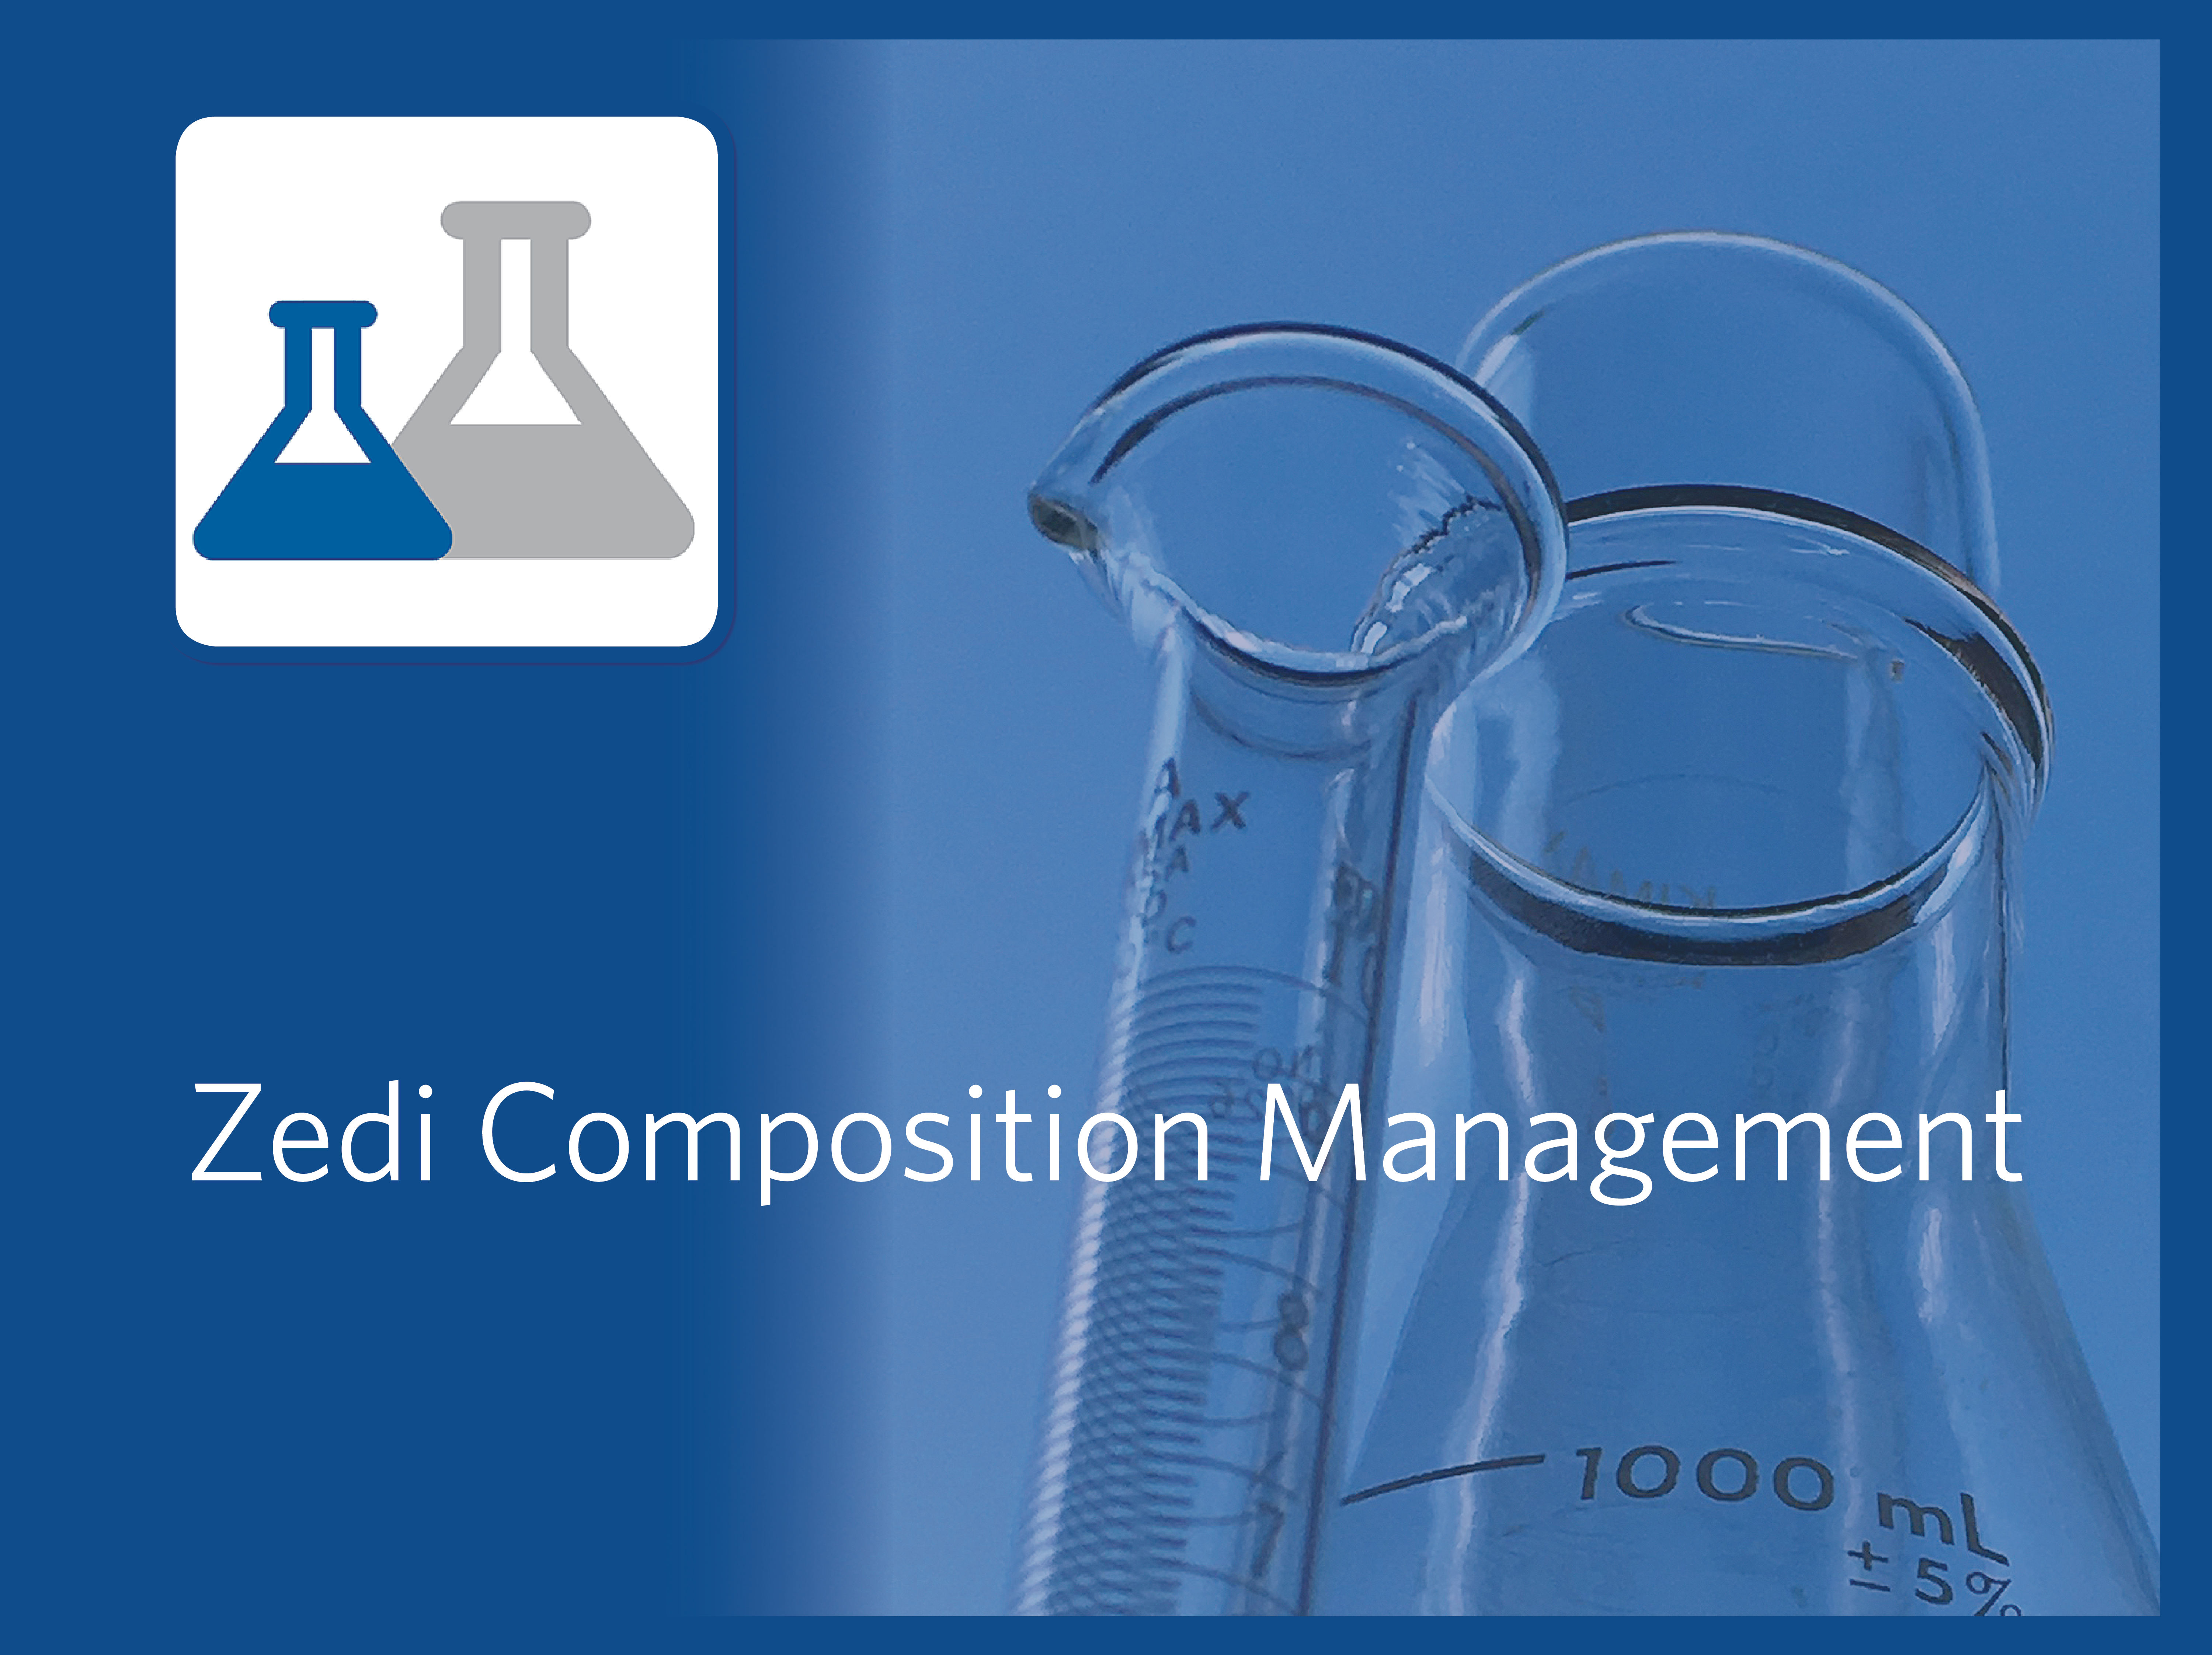 Zedi Composition Management to easily manage oil and gas  analysis